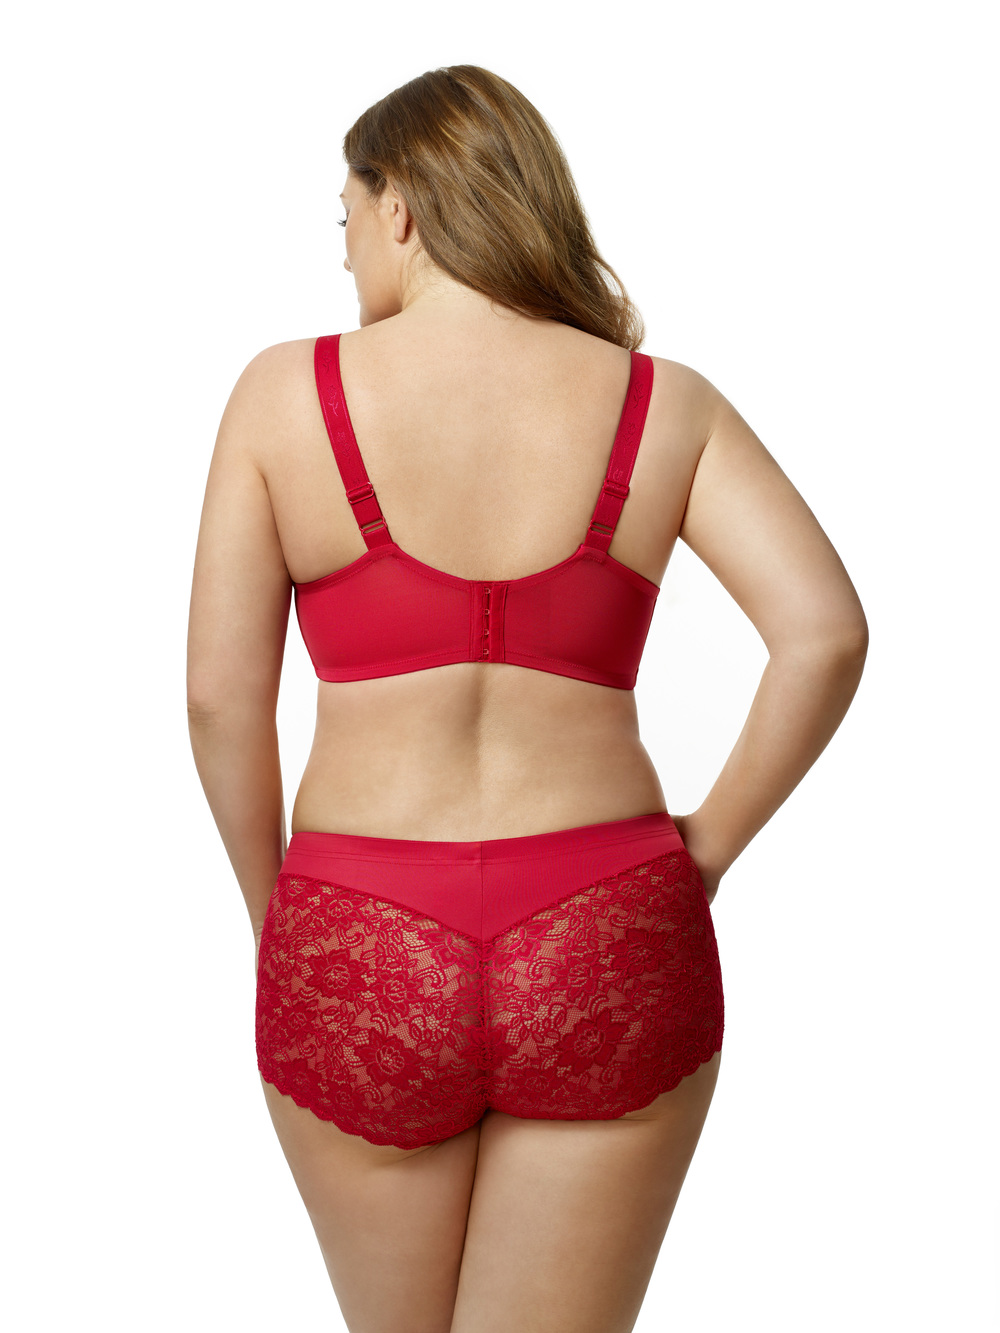 bcaa5a9a7d83b Stretch Lace Full Coverage Underwire — Elila